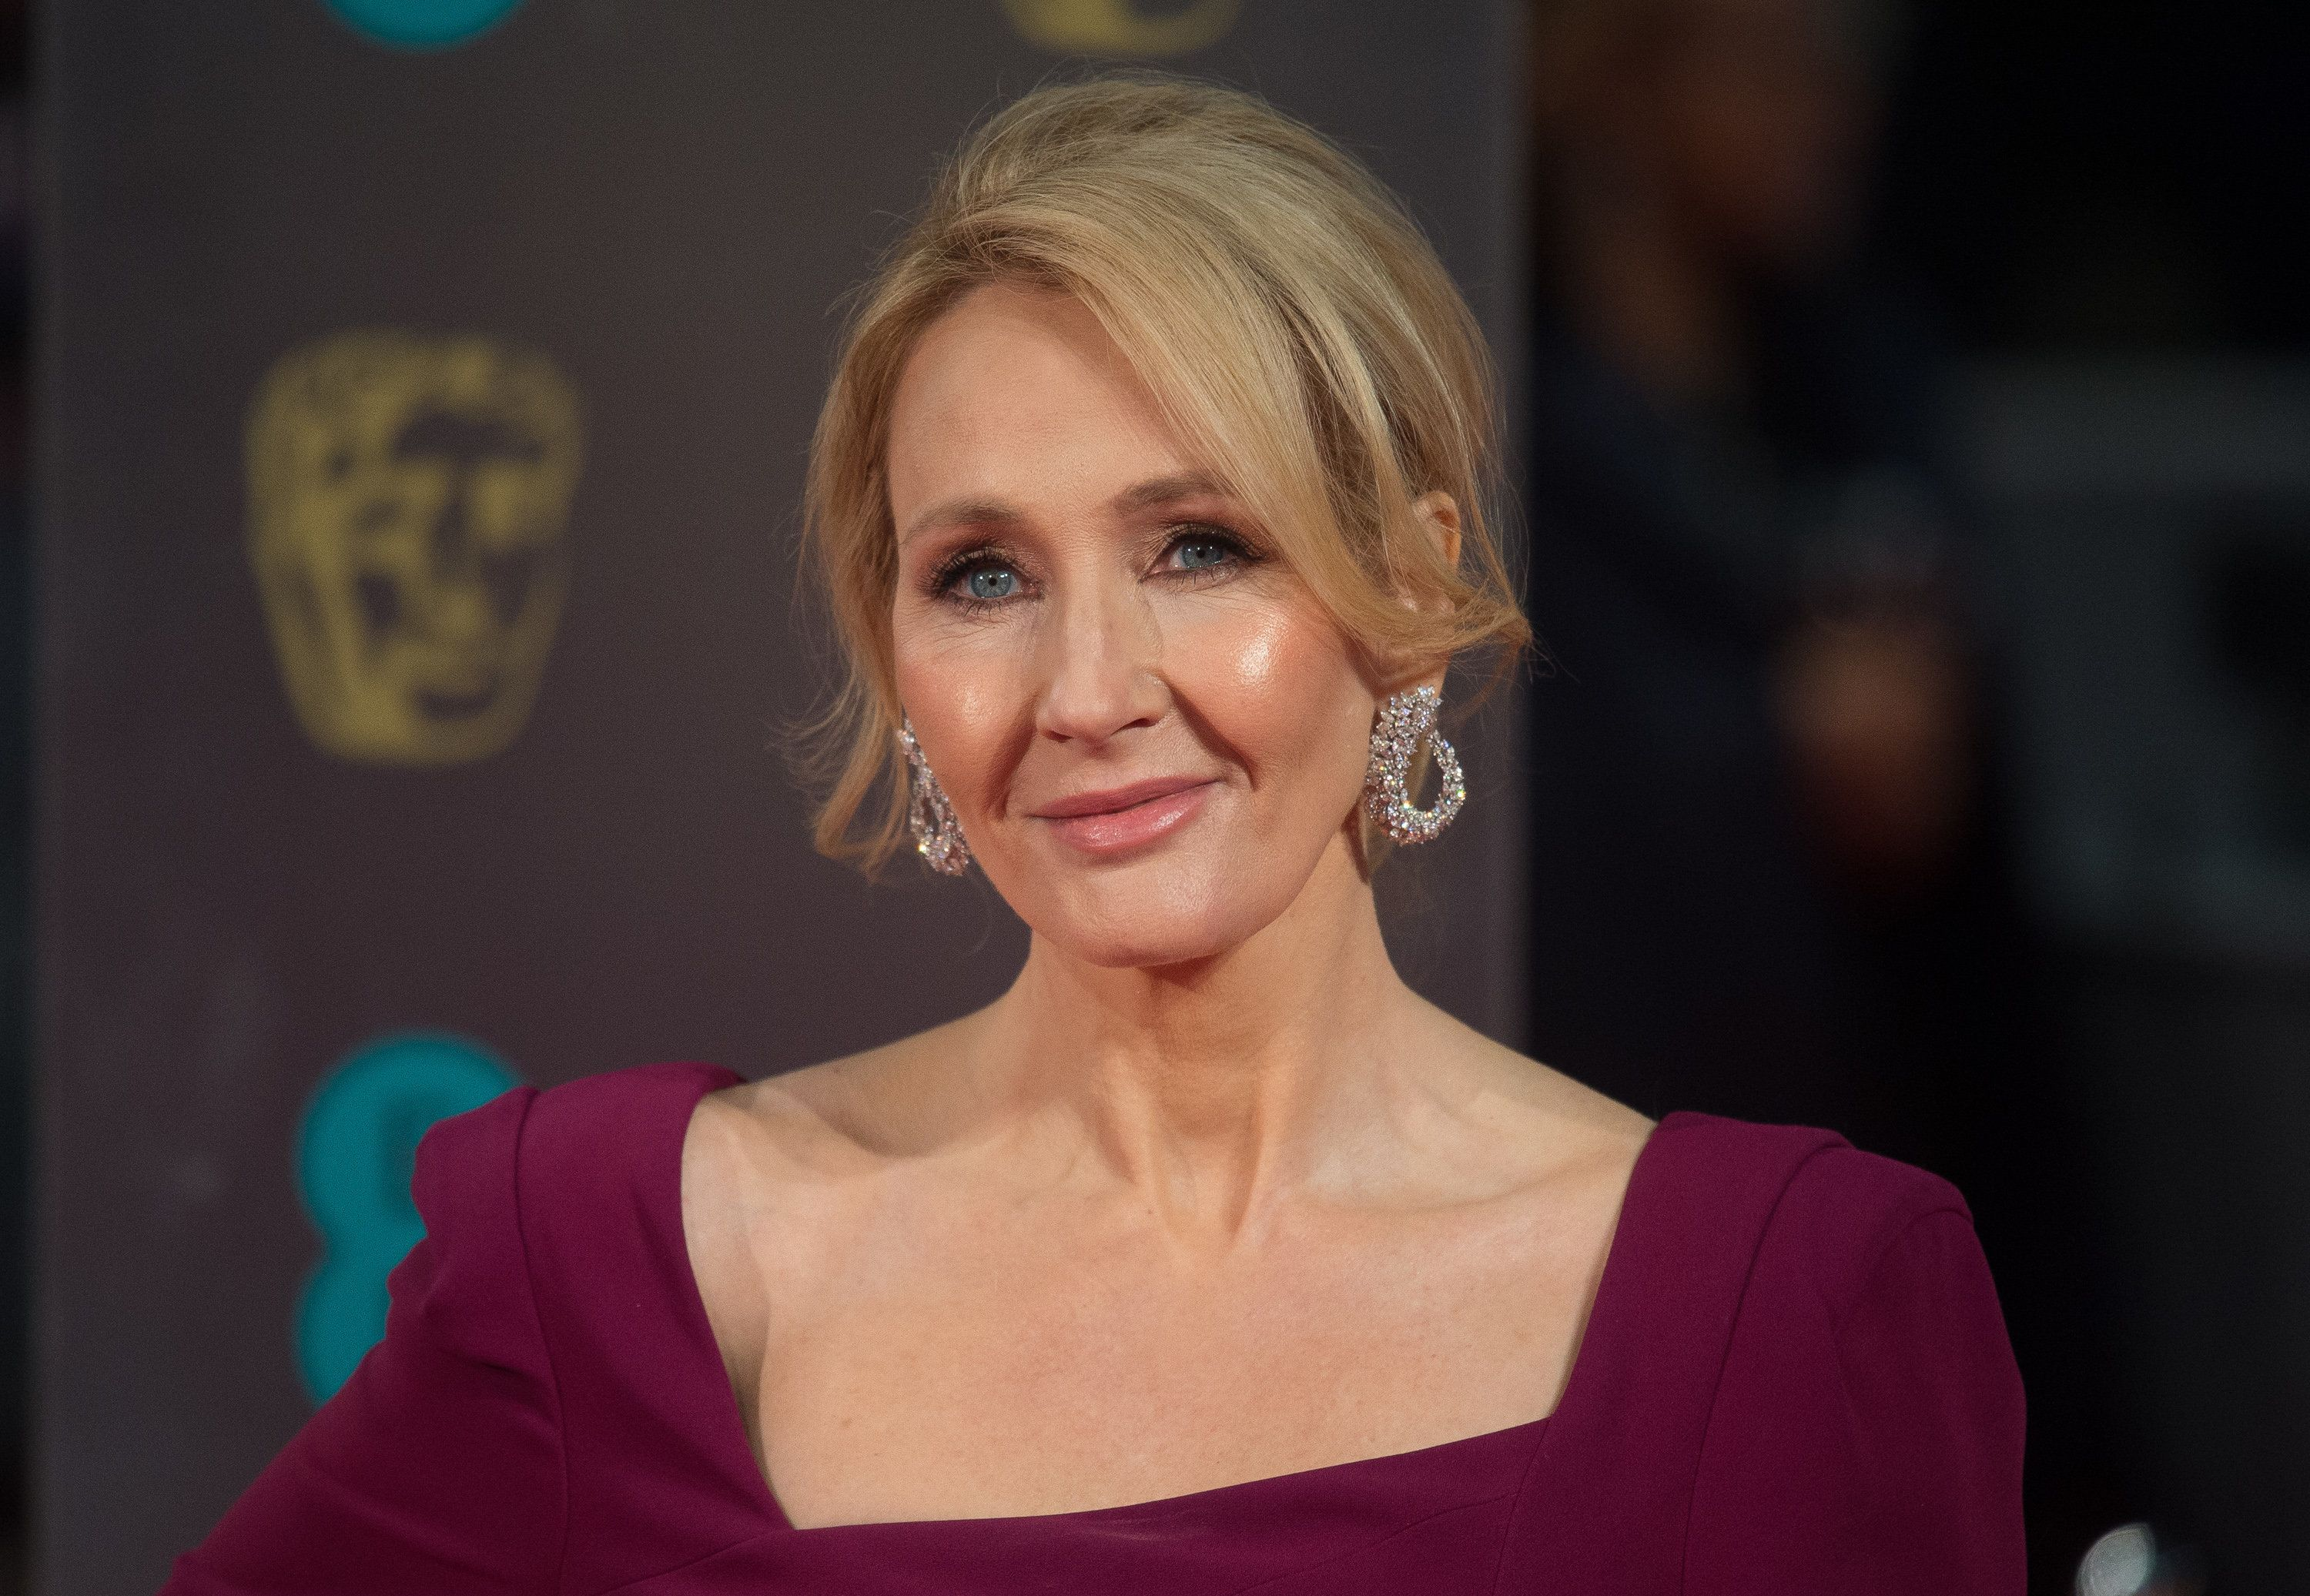 LONDON, ENGLAND - FEBRUARY 12:  J.K. Rowling attends the 70th EE British Academy Film Awards (BAFTA) at Royal Albert Hall on February 12, 2017 in London, England.  (Photo by Samir Hussein/WireImage)